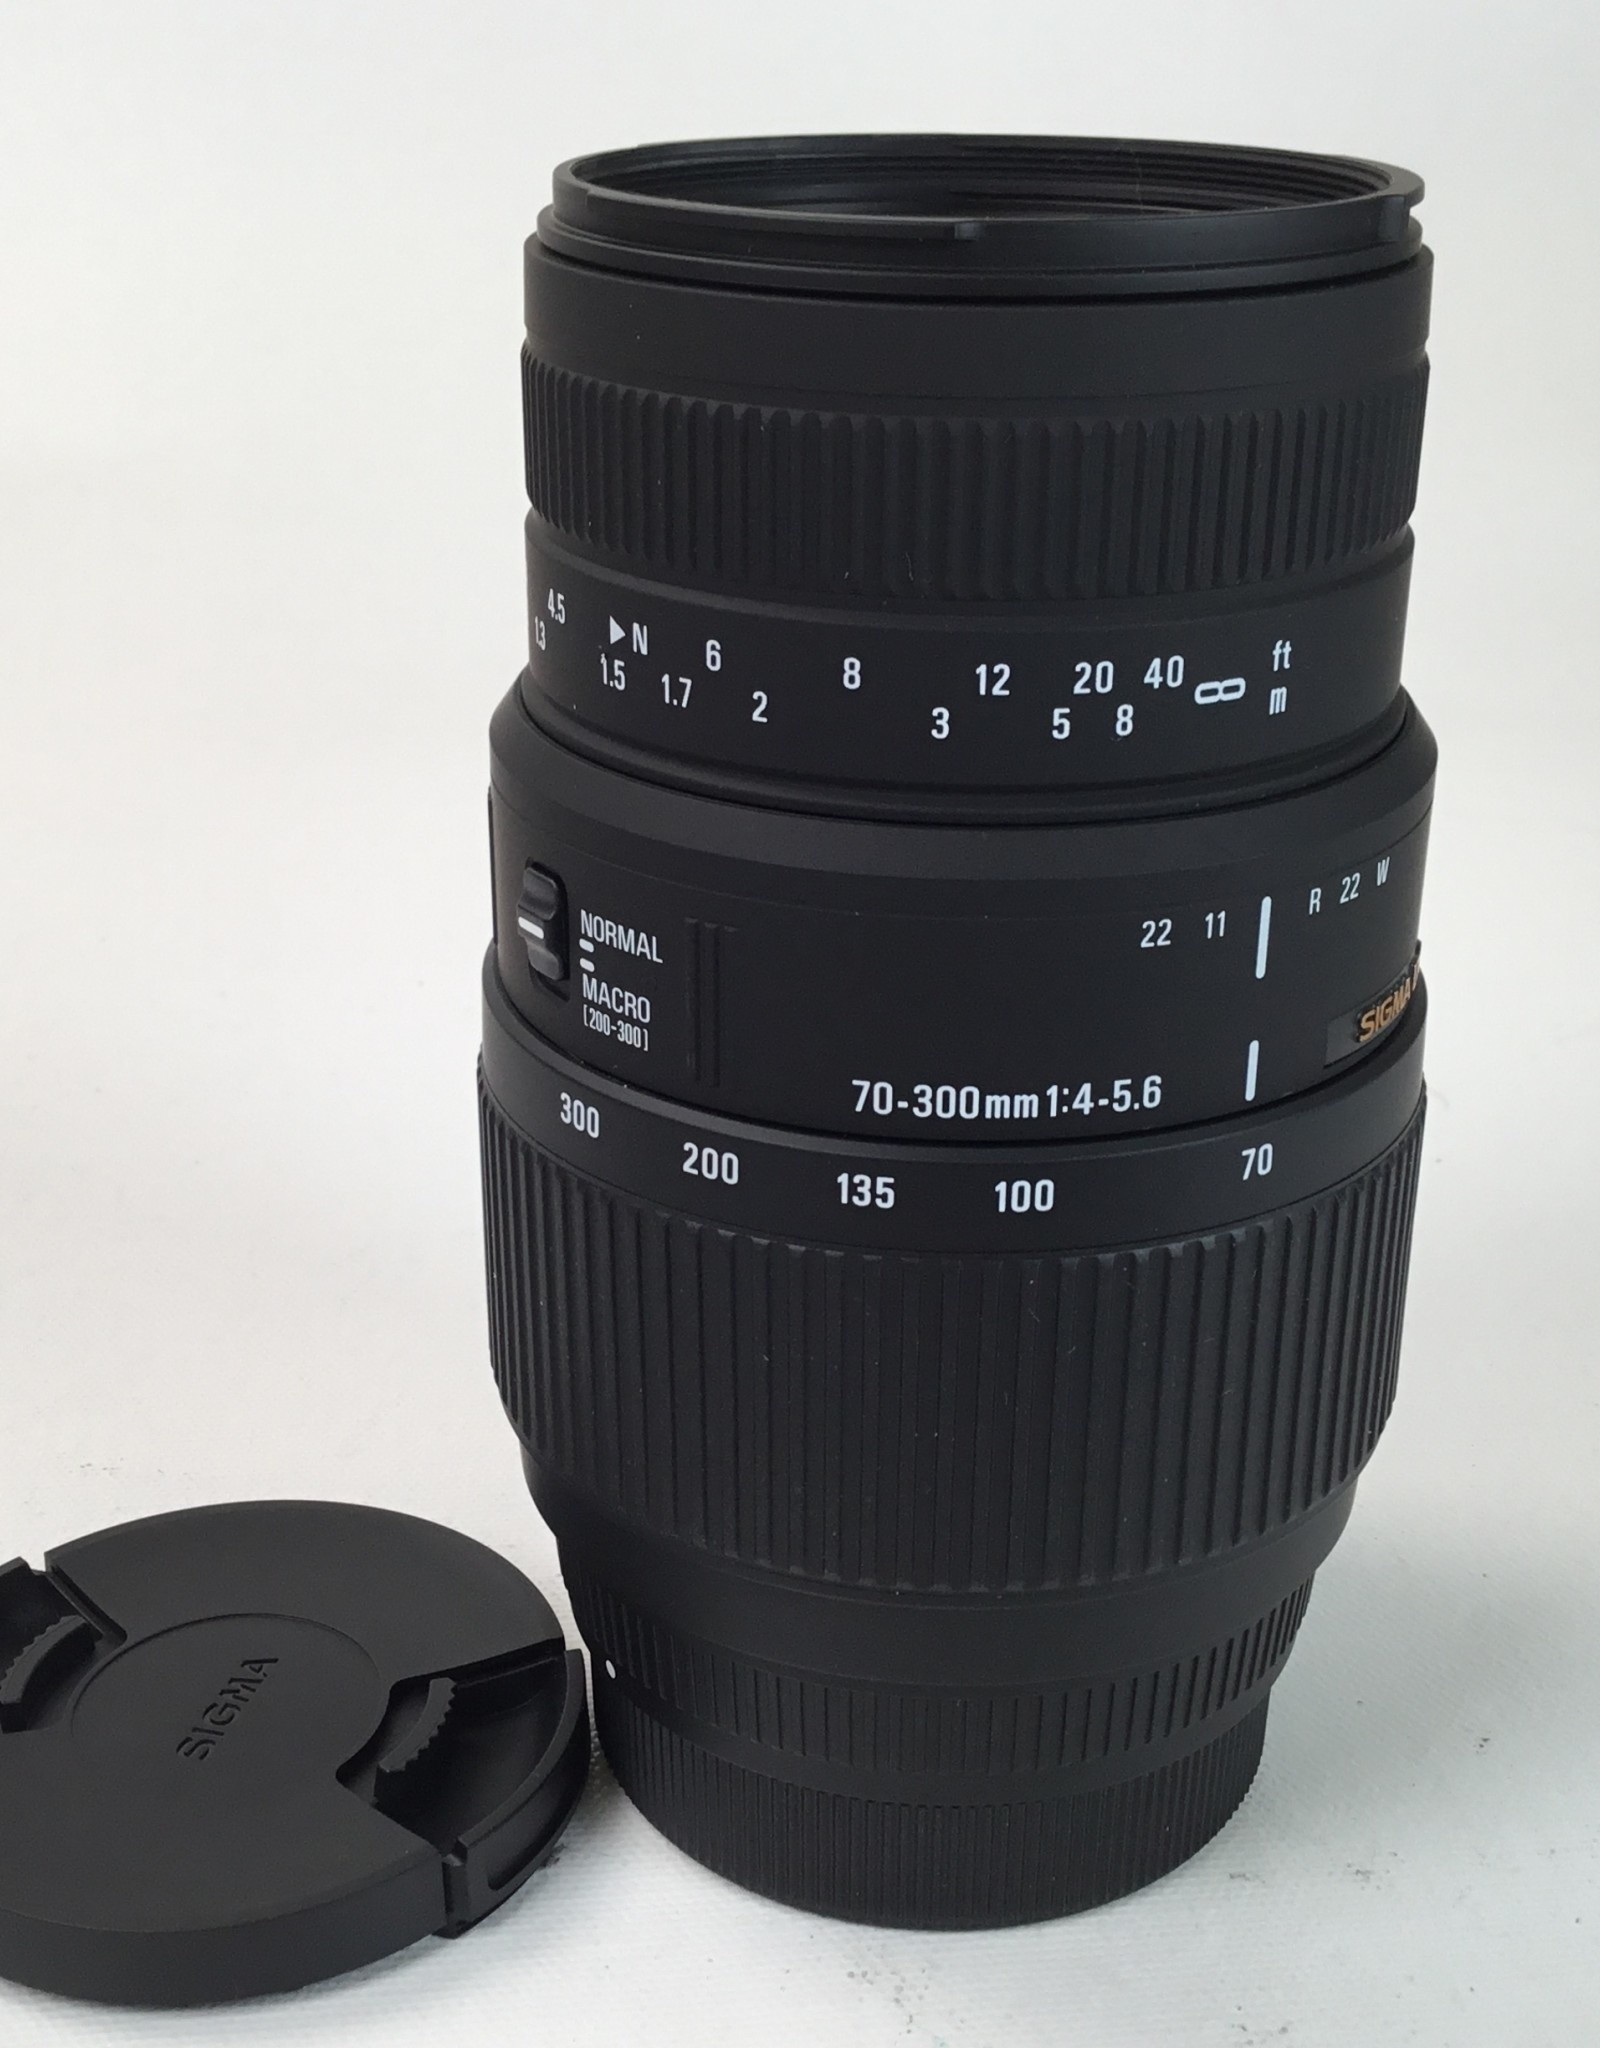 SIGMA Sigma 70-300mm f4-5.6 DG Lens for Sony A Used EX+